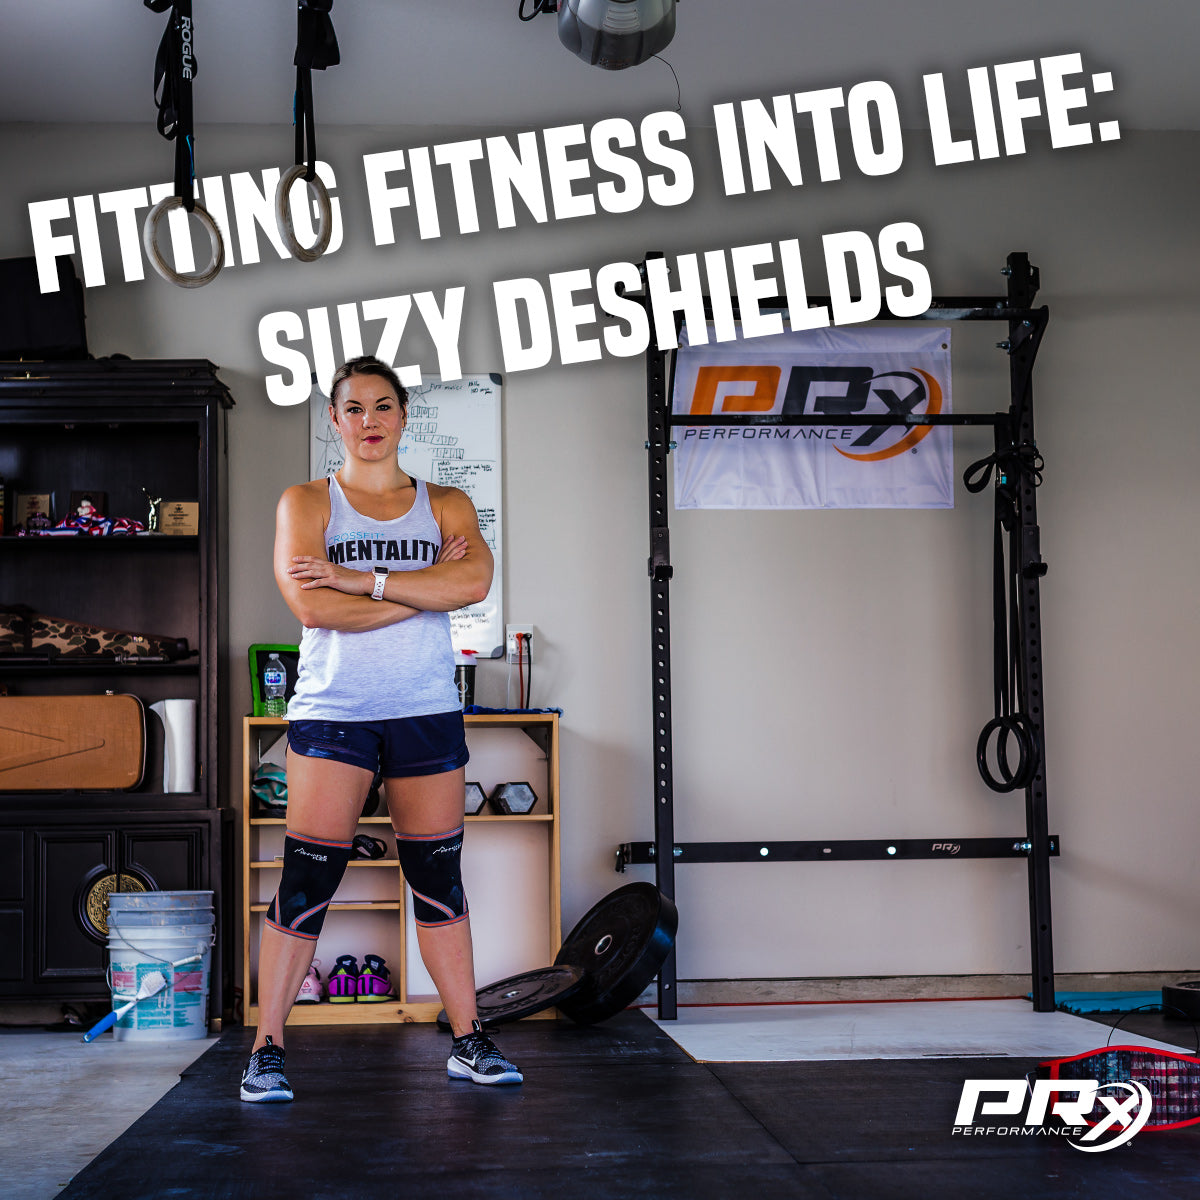 Fitting Fitness into Life: Suzy DeShields